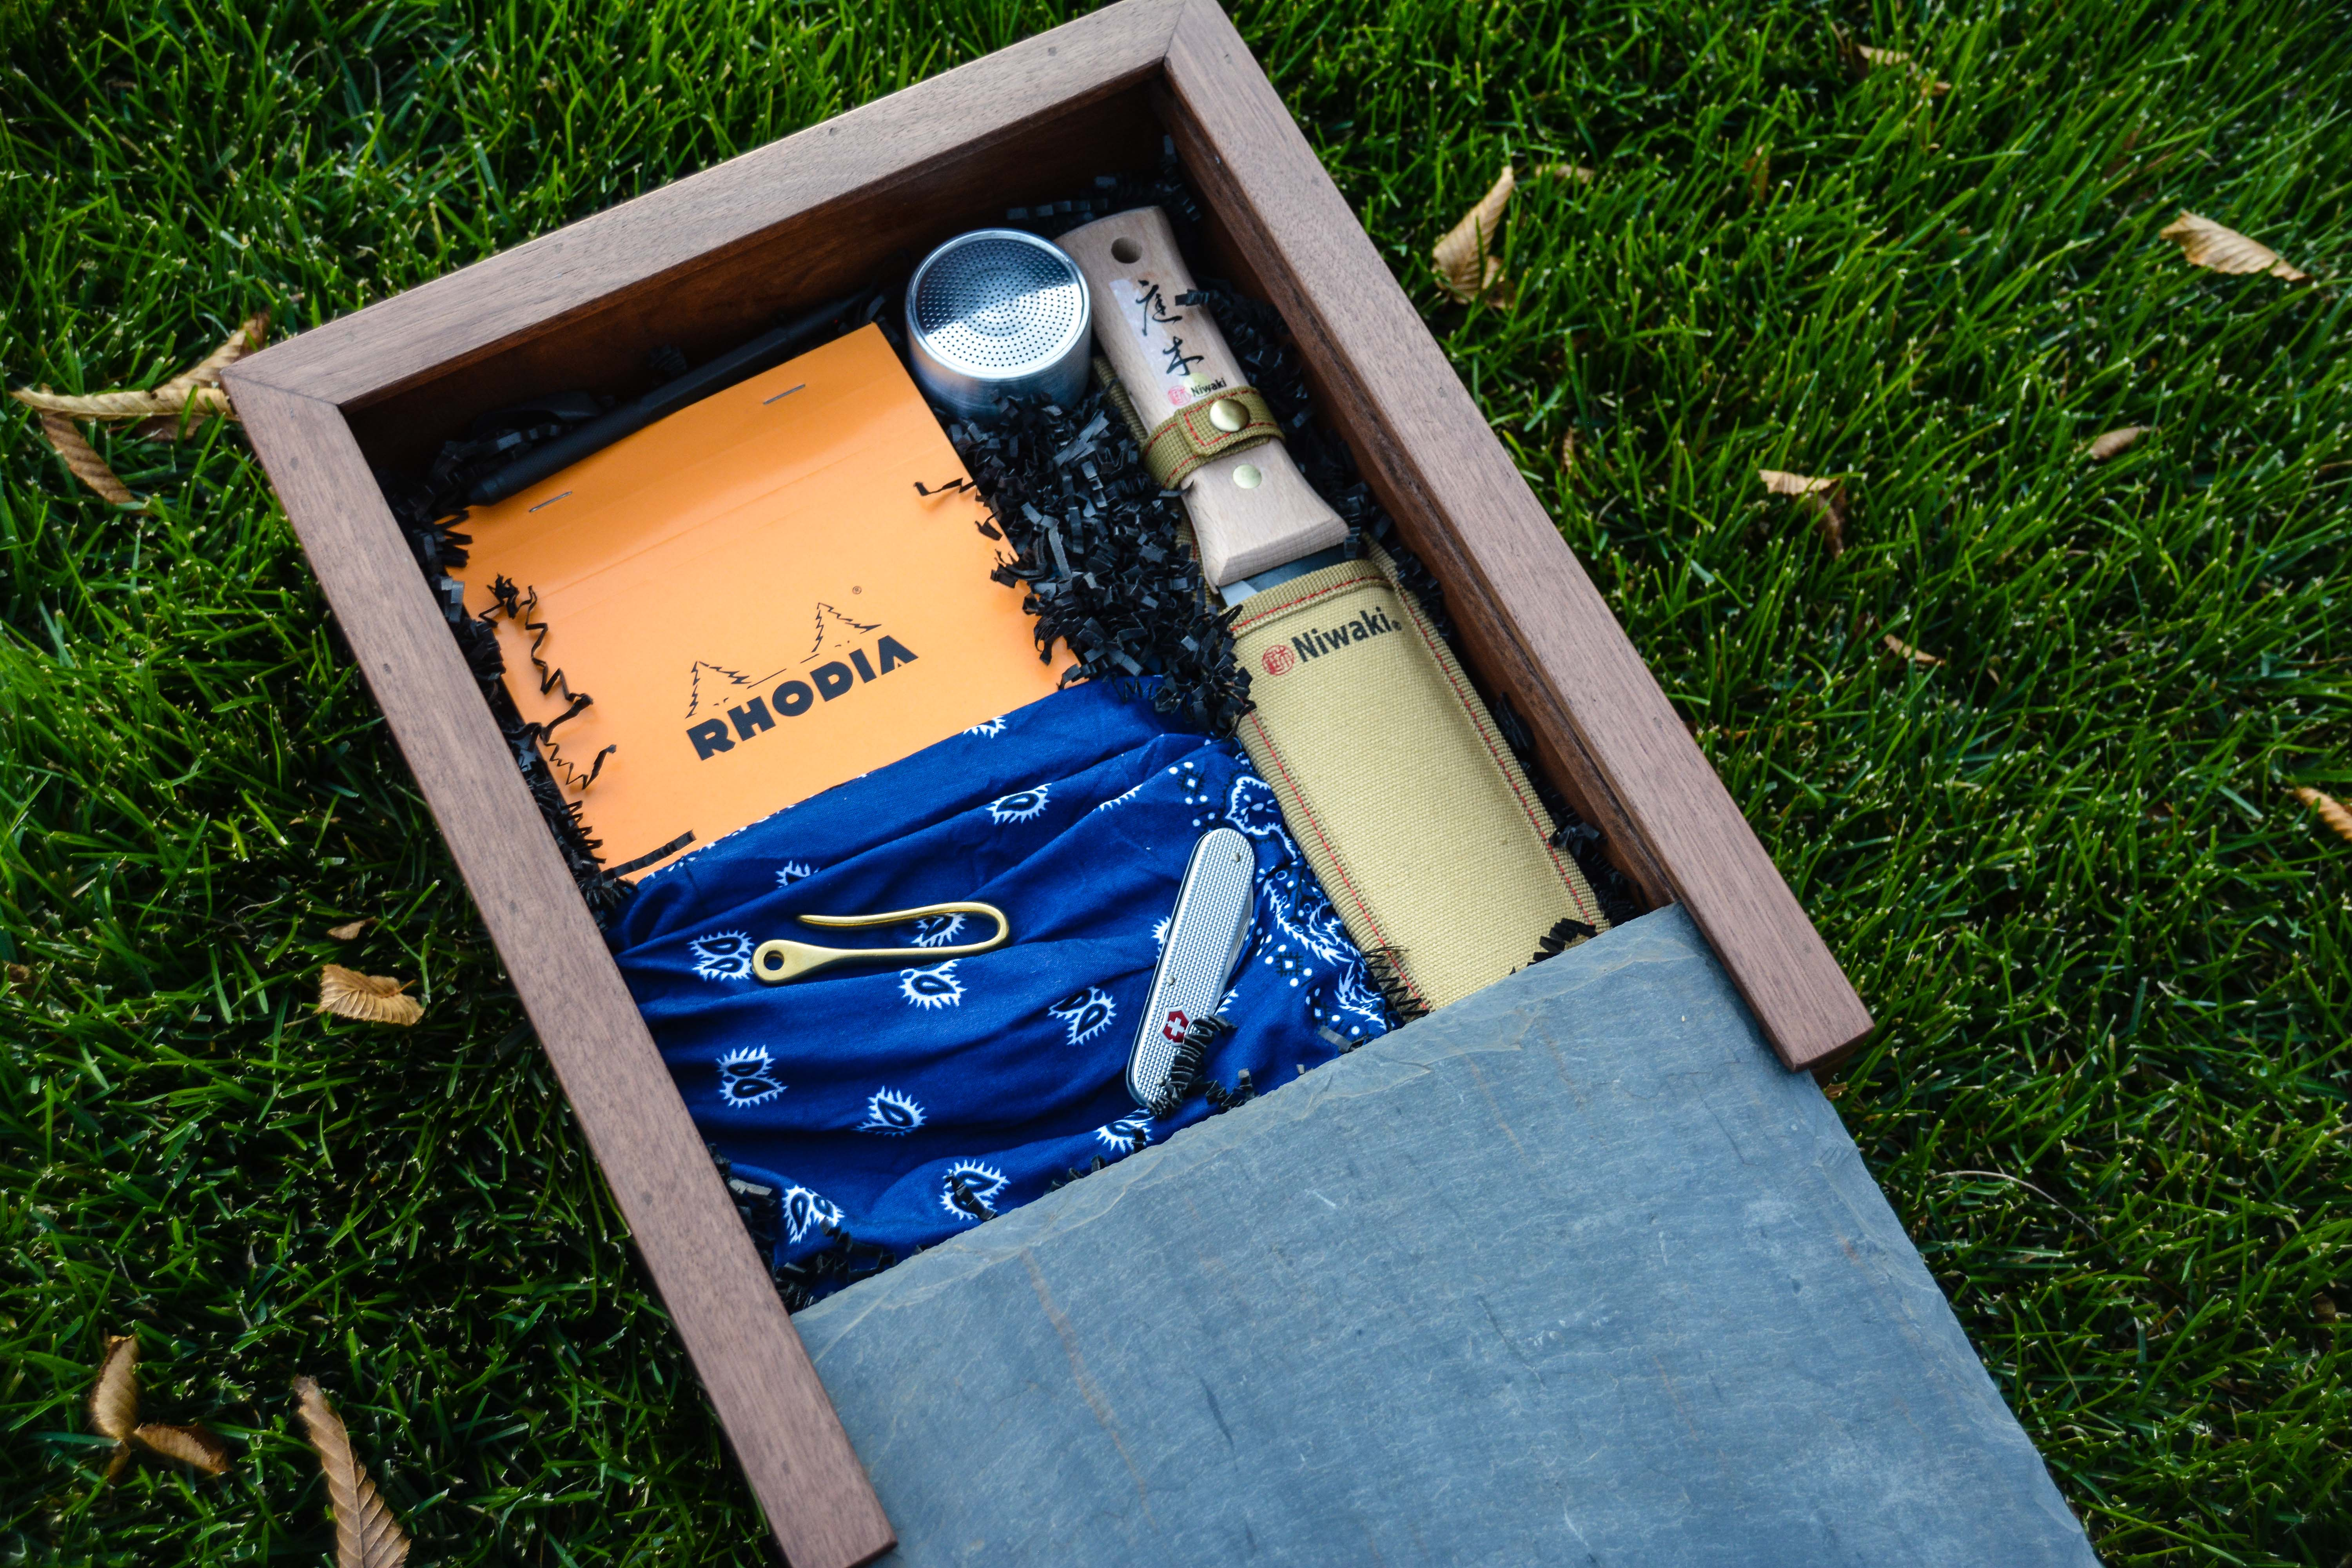 The Gardener's Everyday Carry Curated Gift Box from Thinking Outside the Boxwood. The Gardener's Holiday gift guide